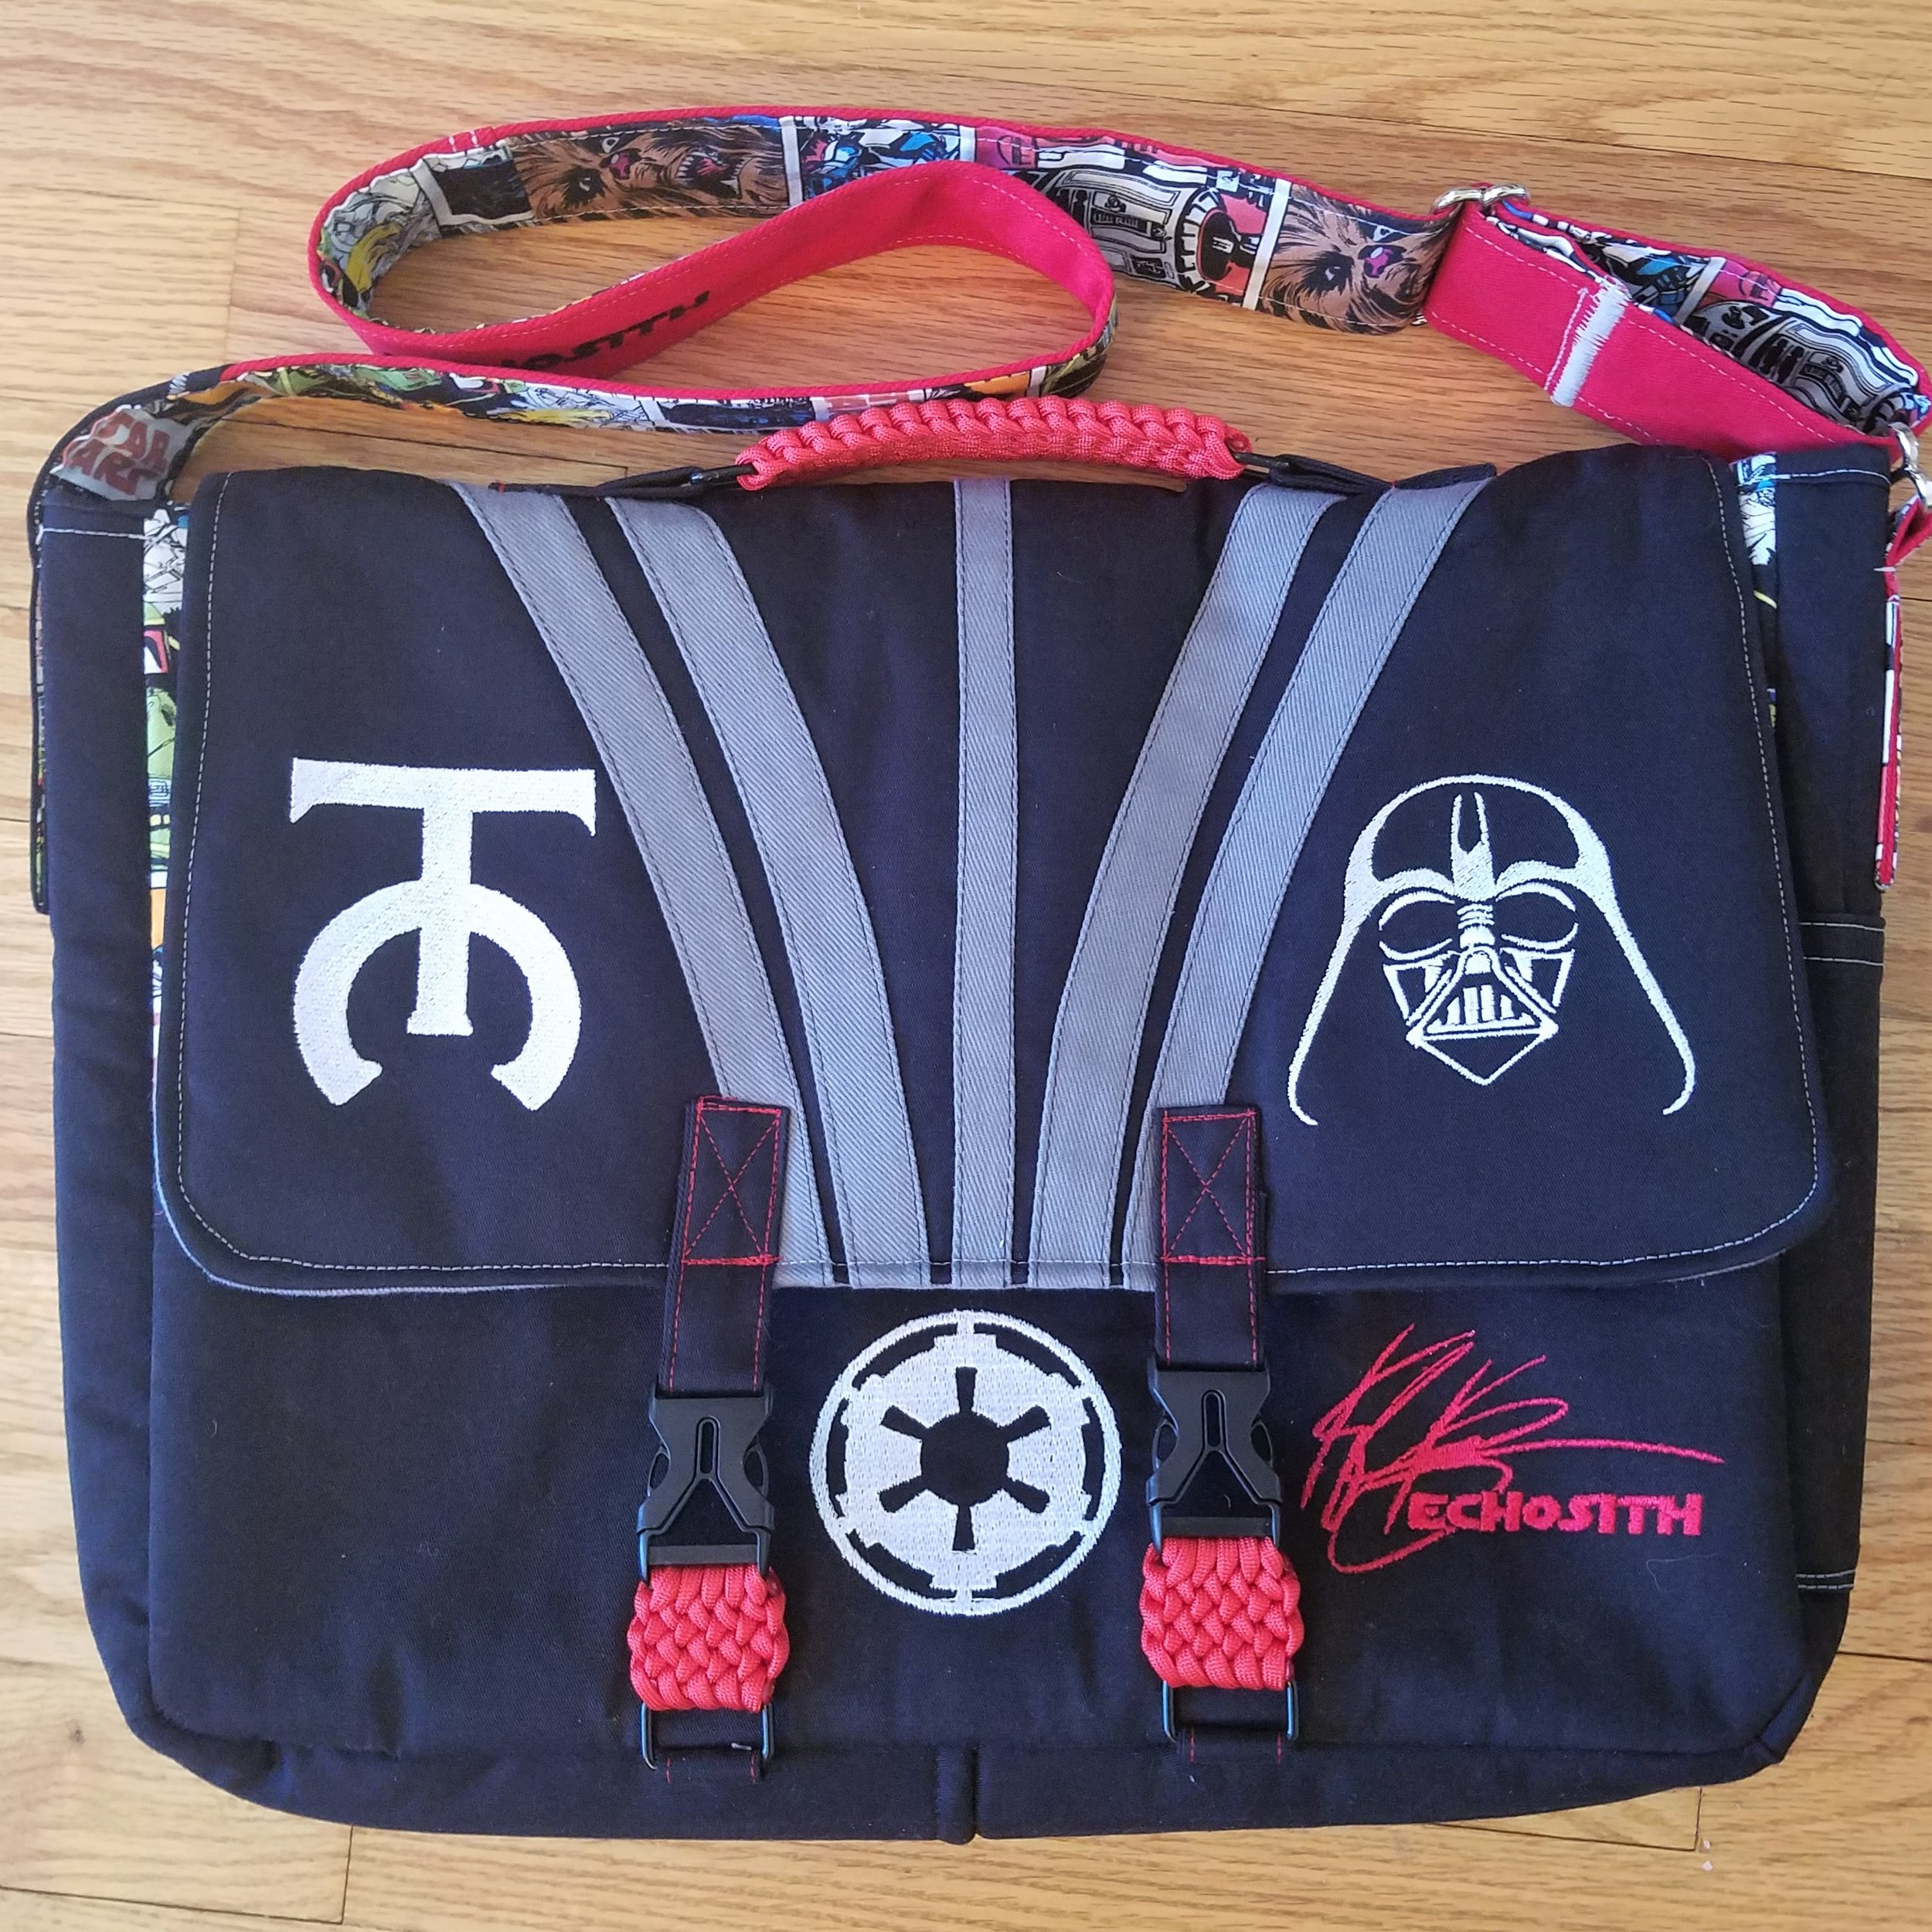 Tock Custom - Echosith Star Wars Bag